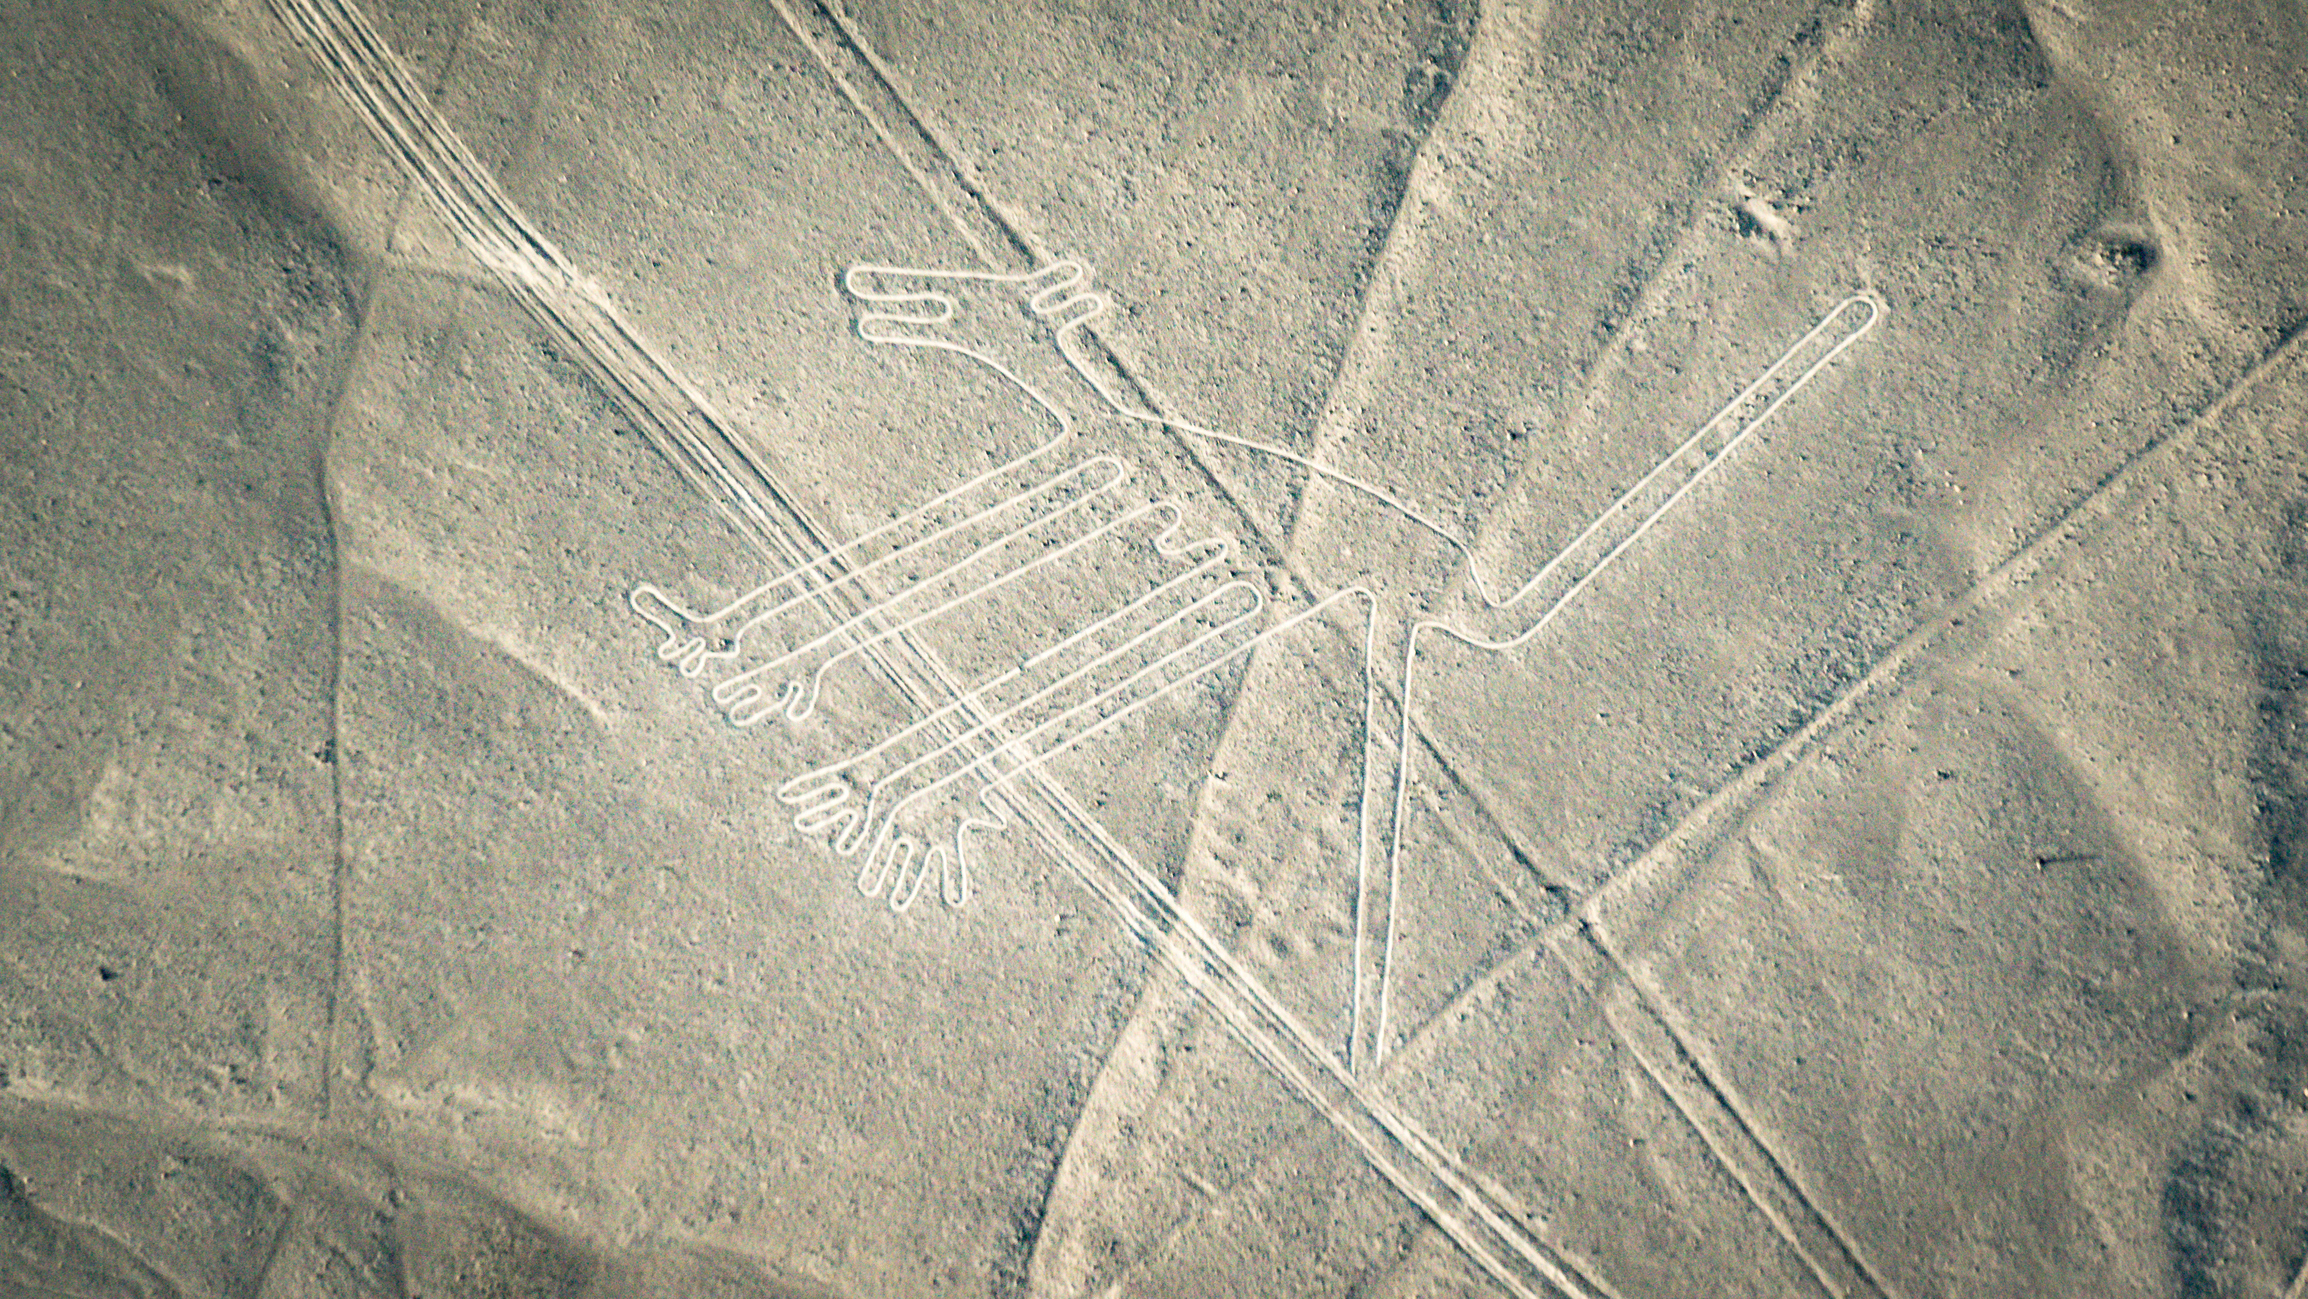 Dog figure as seen in the Nasca Lines, Nazca, Peru